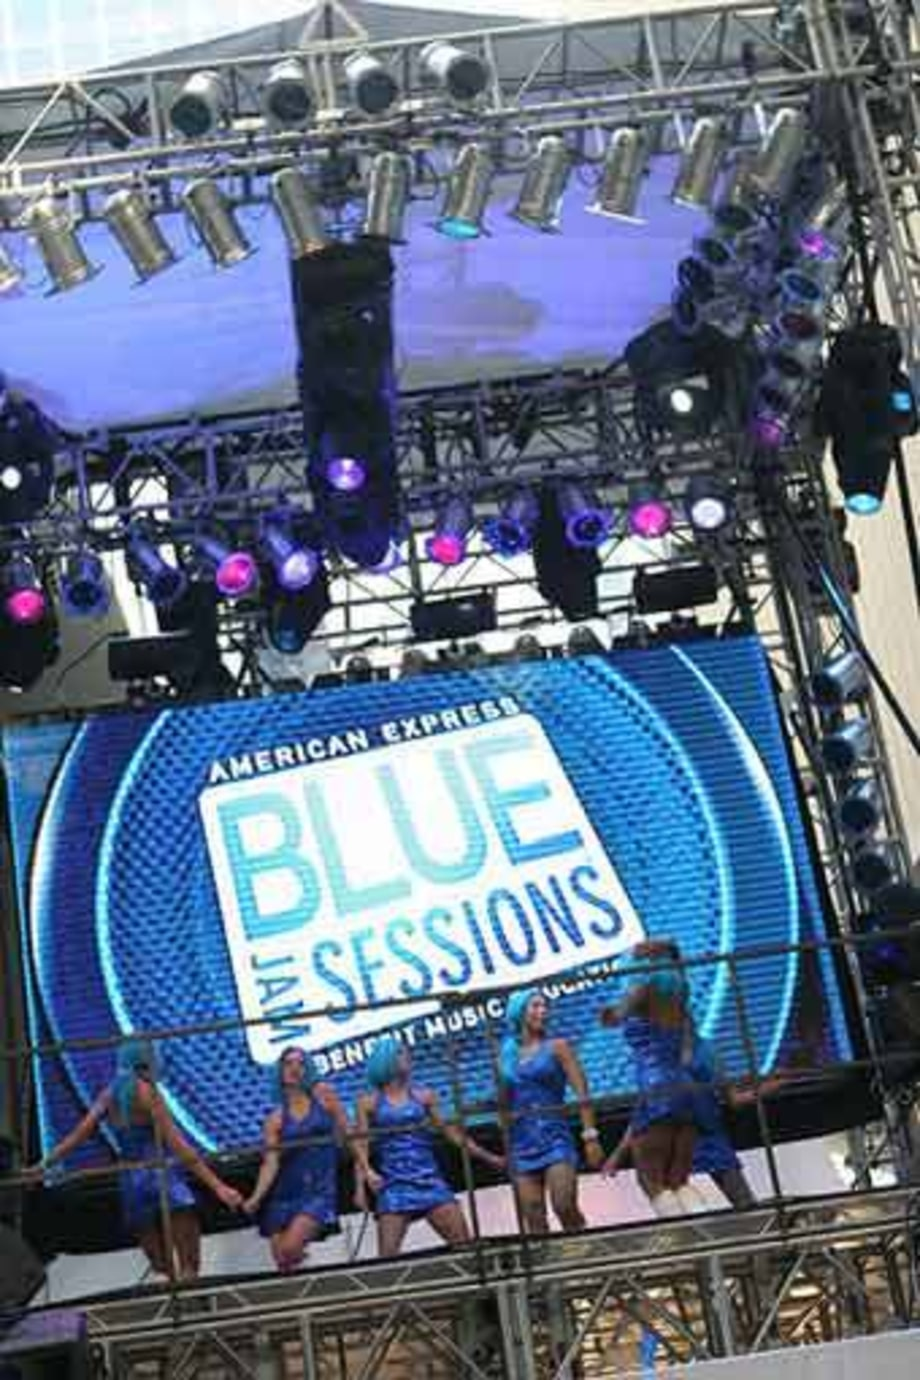 American Express Blue Jam Sessions 3